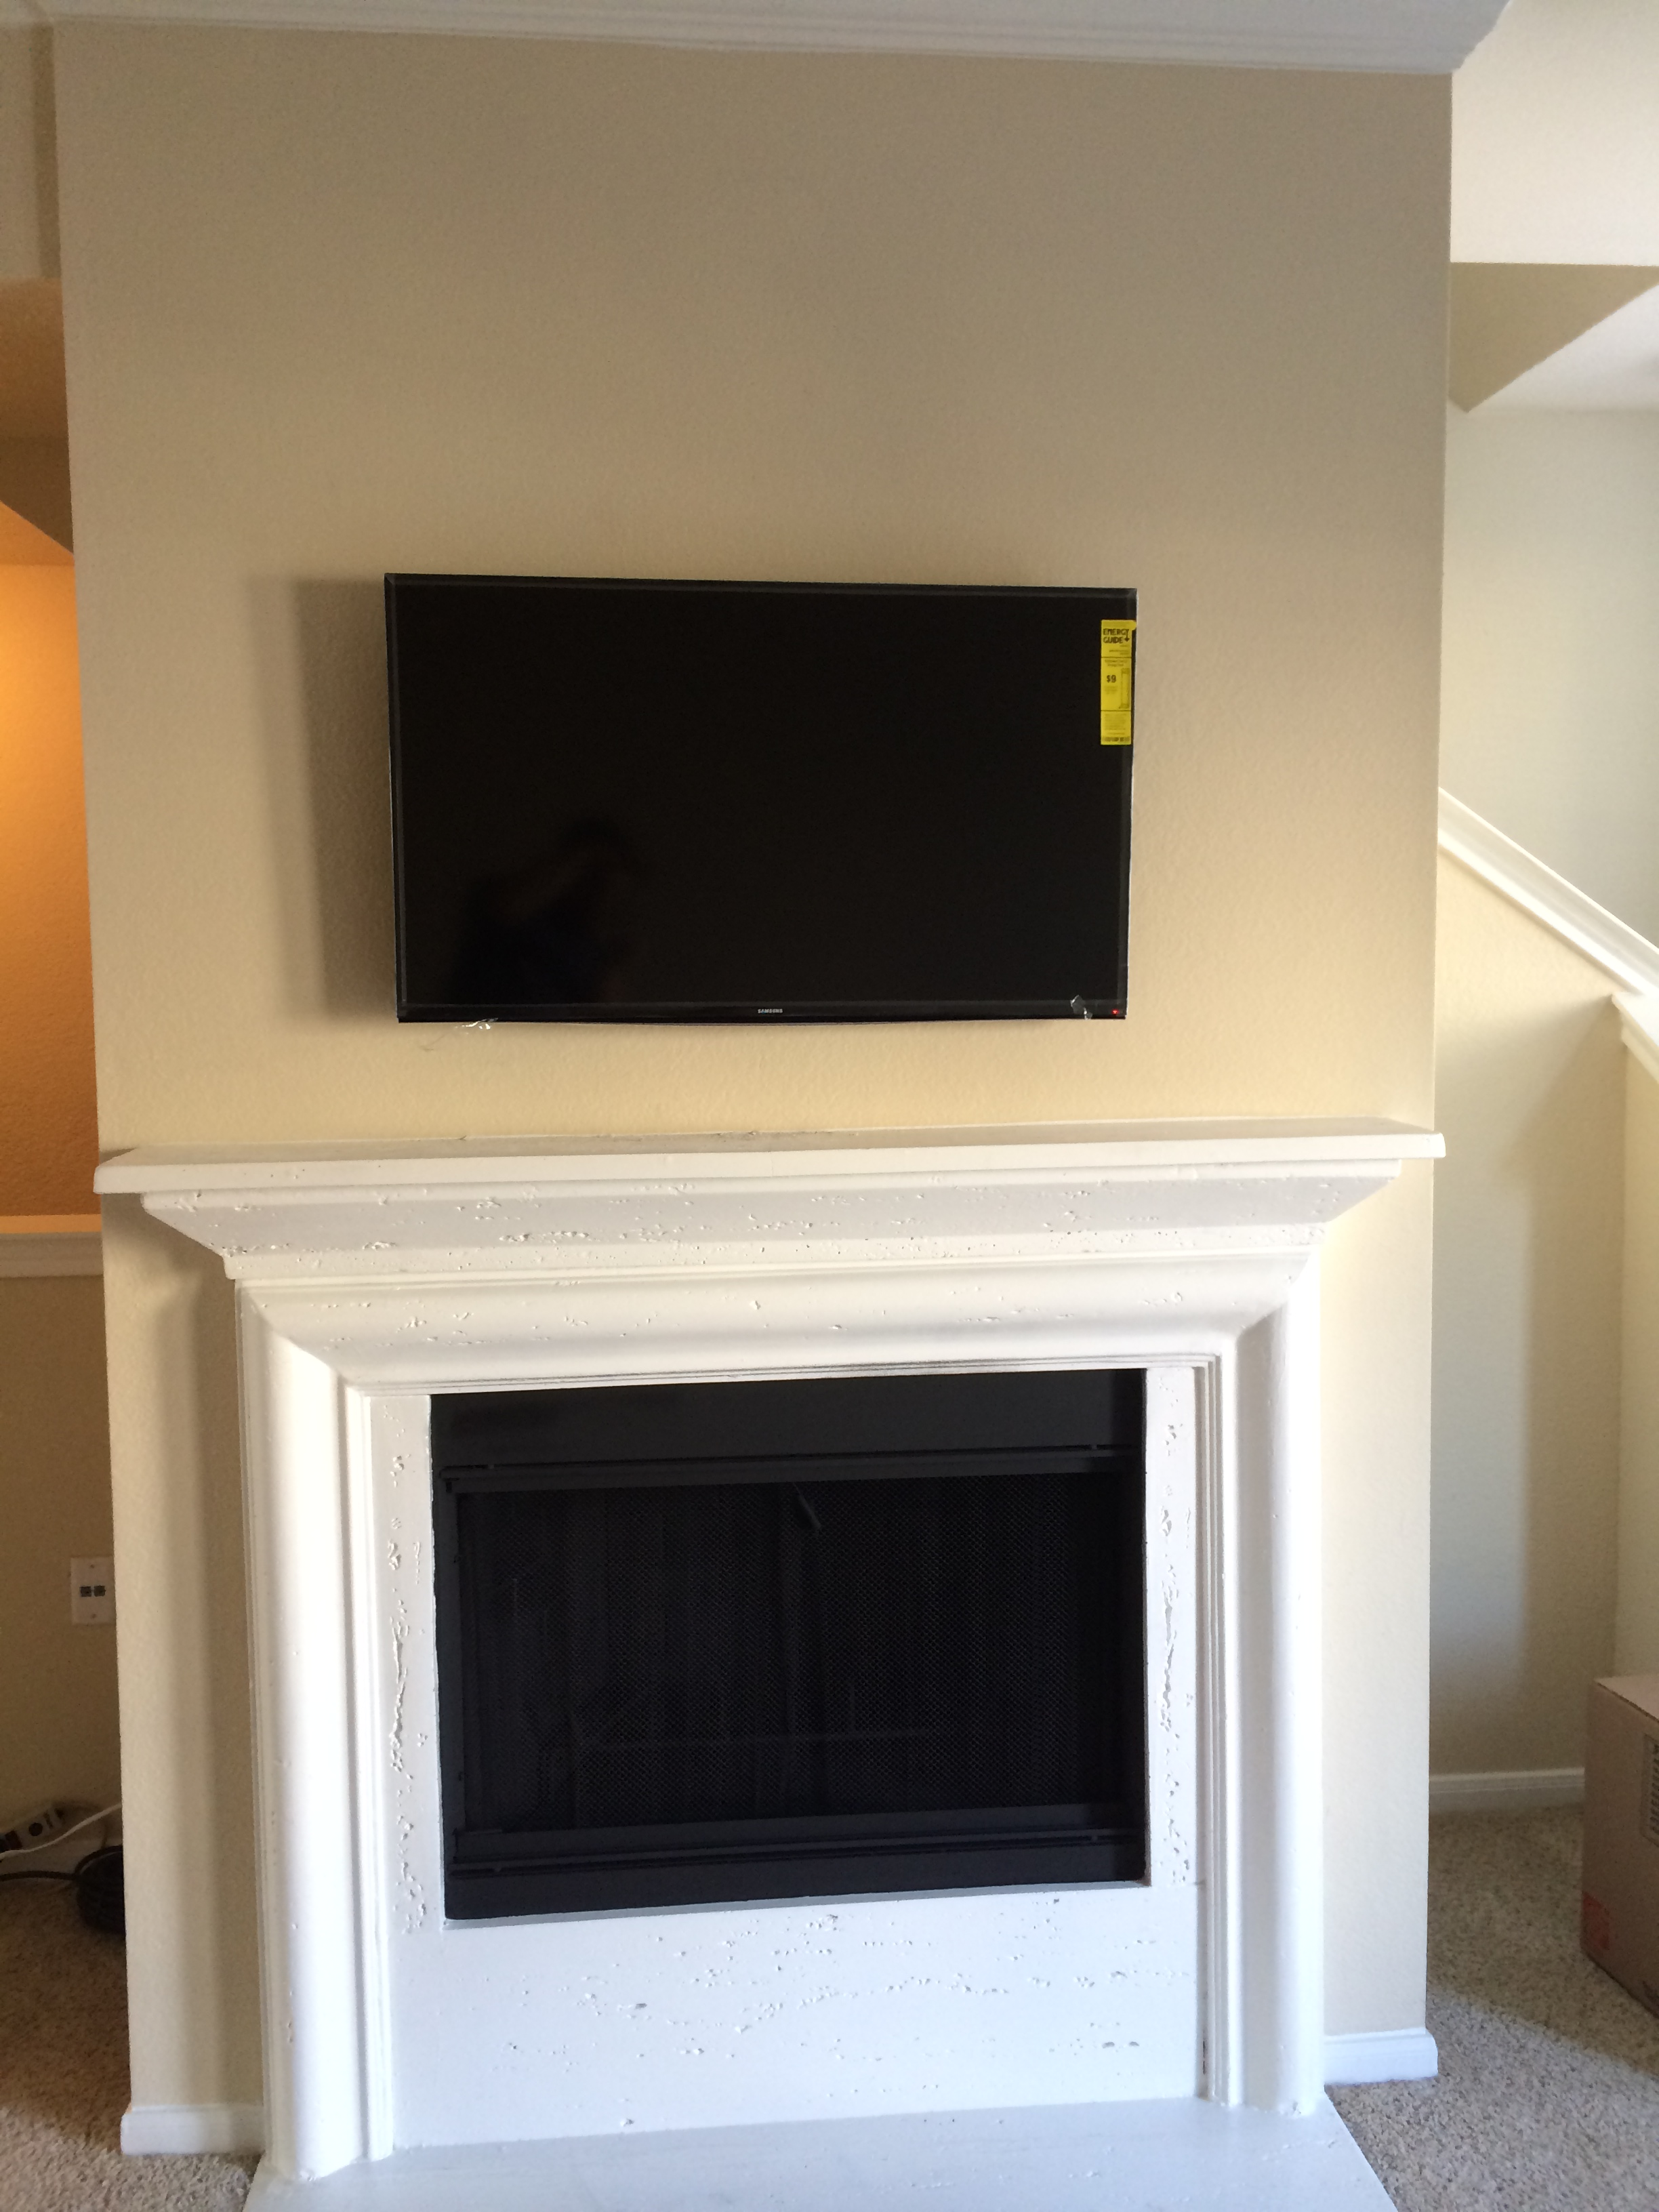 professional tv installation pics u2013 audio visual up